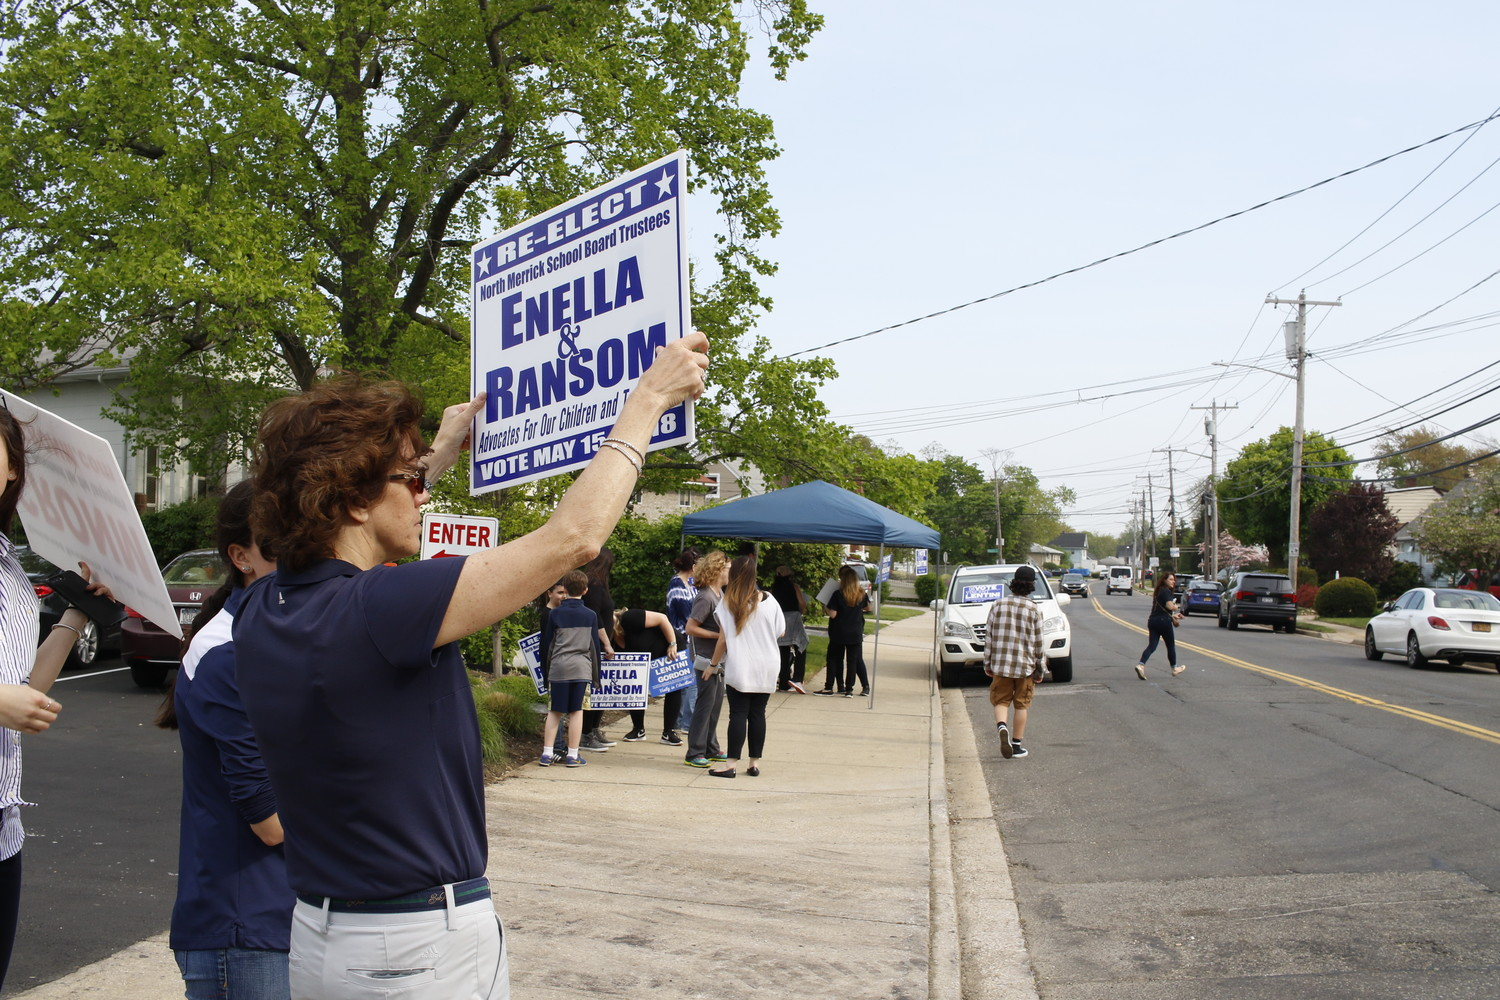 Supporters of incumbents Steve Enella and Todd Ransom, Pat Kaplan and her daughter Brooke, waved signs at cars and passersby as they entered the North Merrick Library. Enella and Ransom were defeated by newcomers Vincent Lentini and Michelle Gordon.